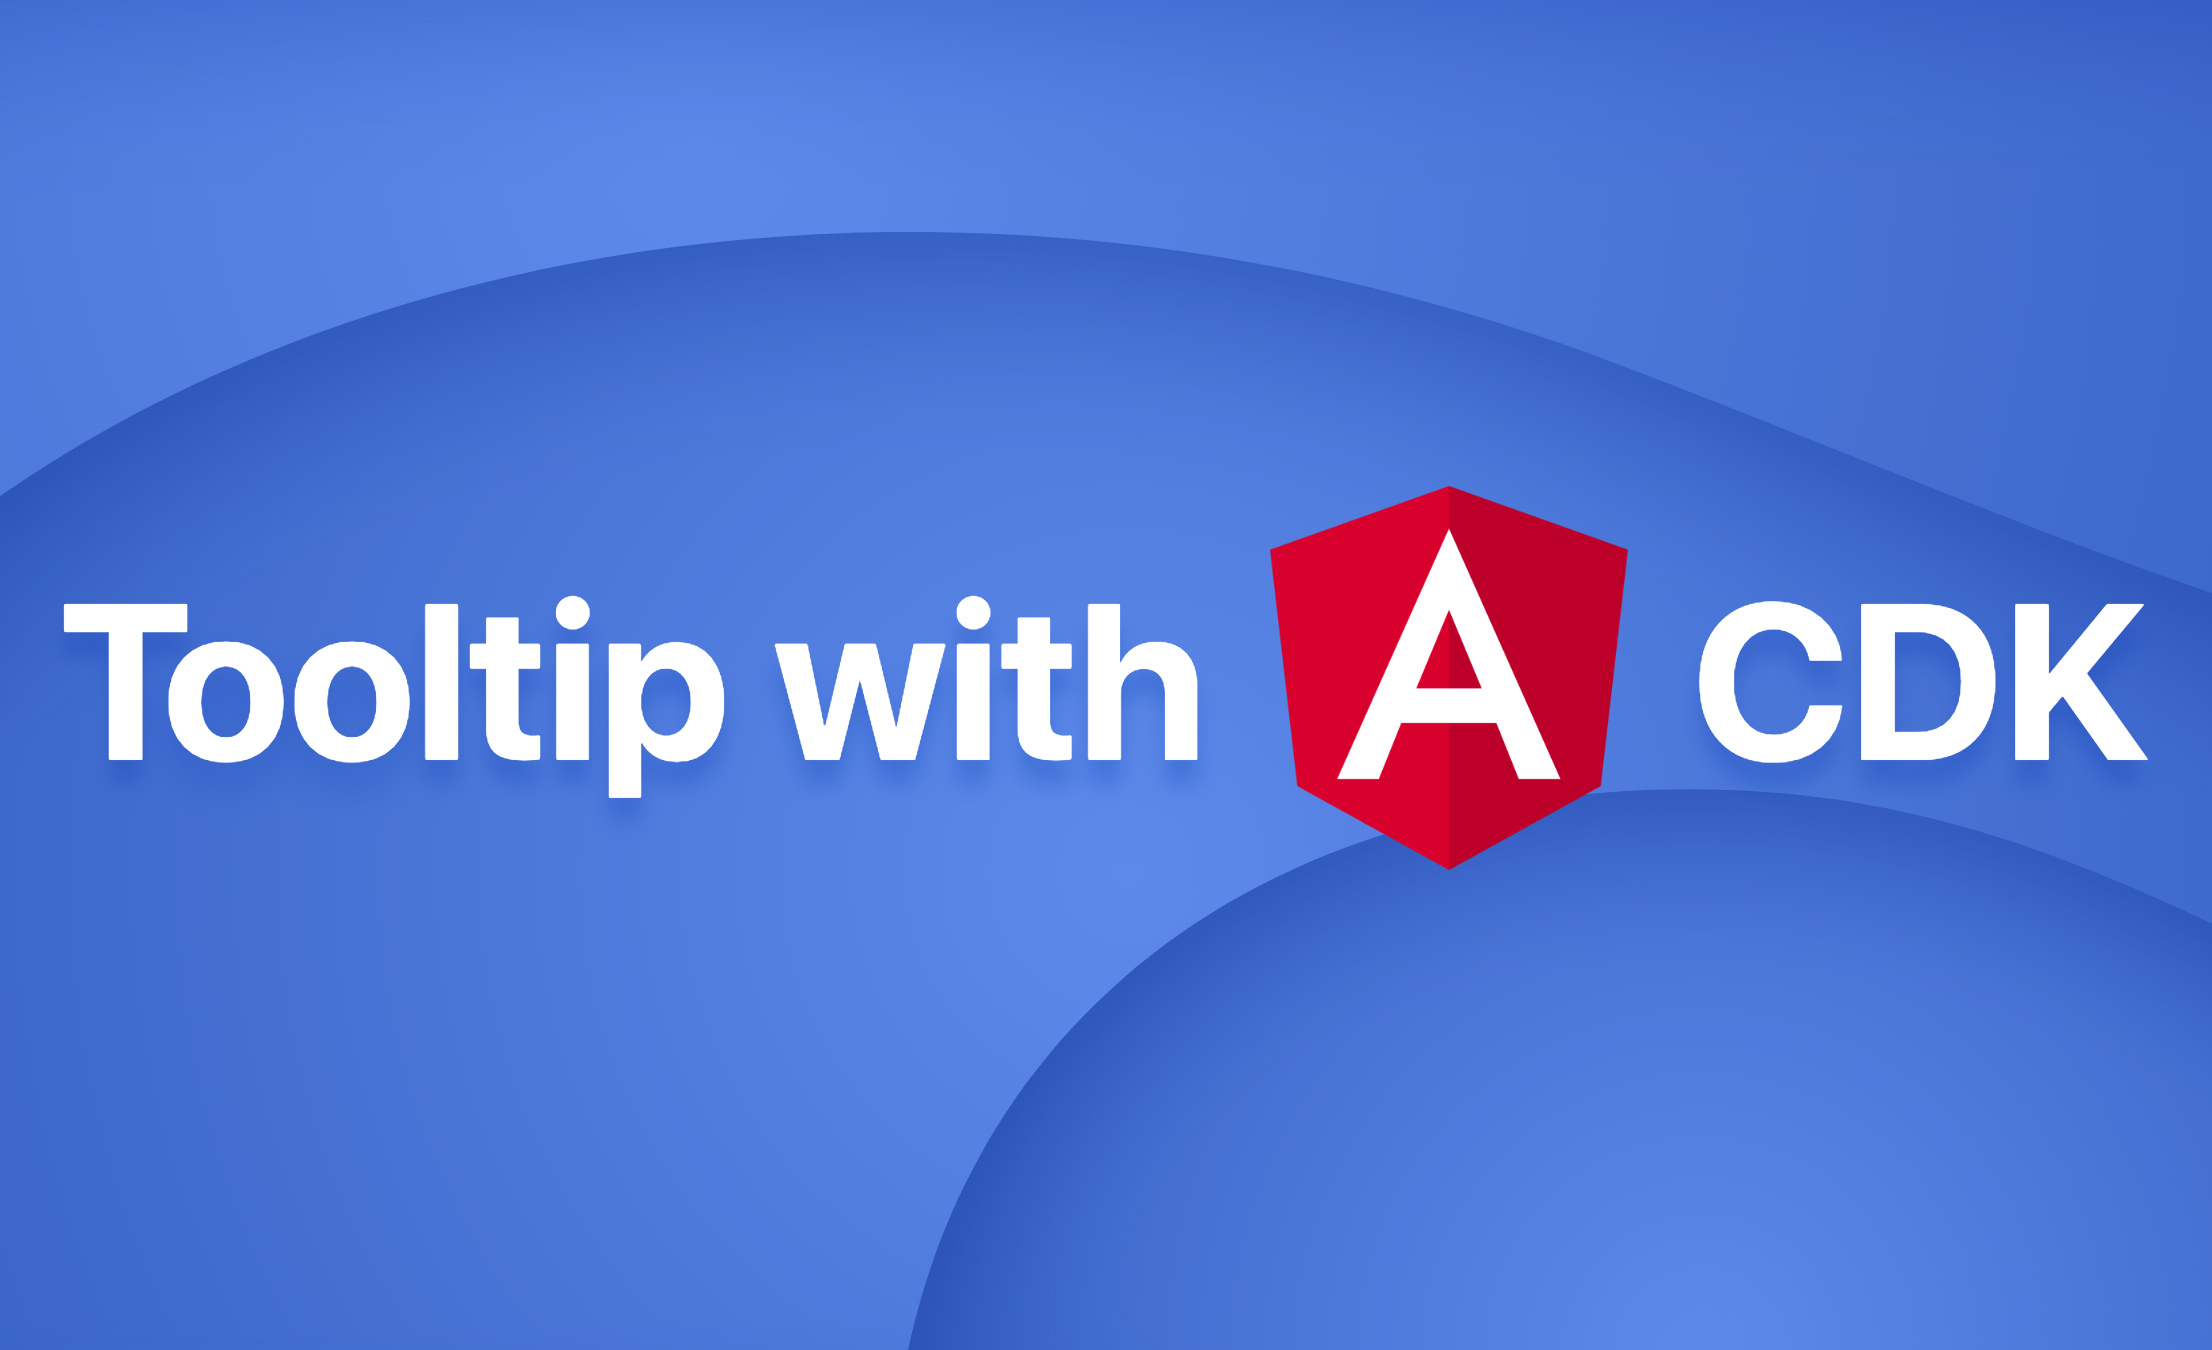 Tooltip with Angular CDK